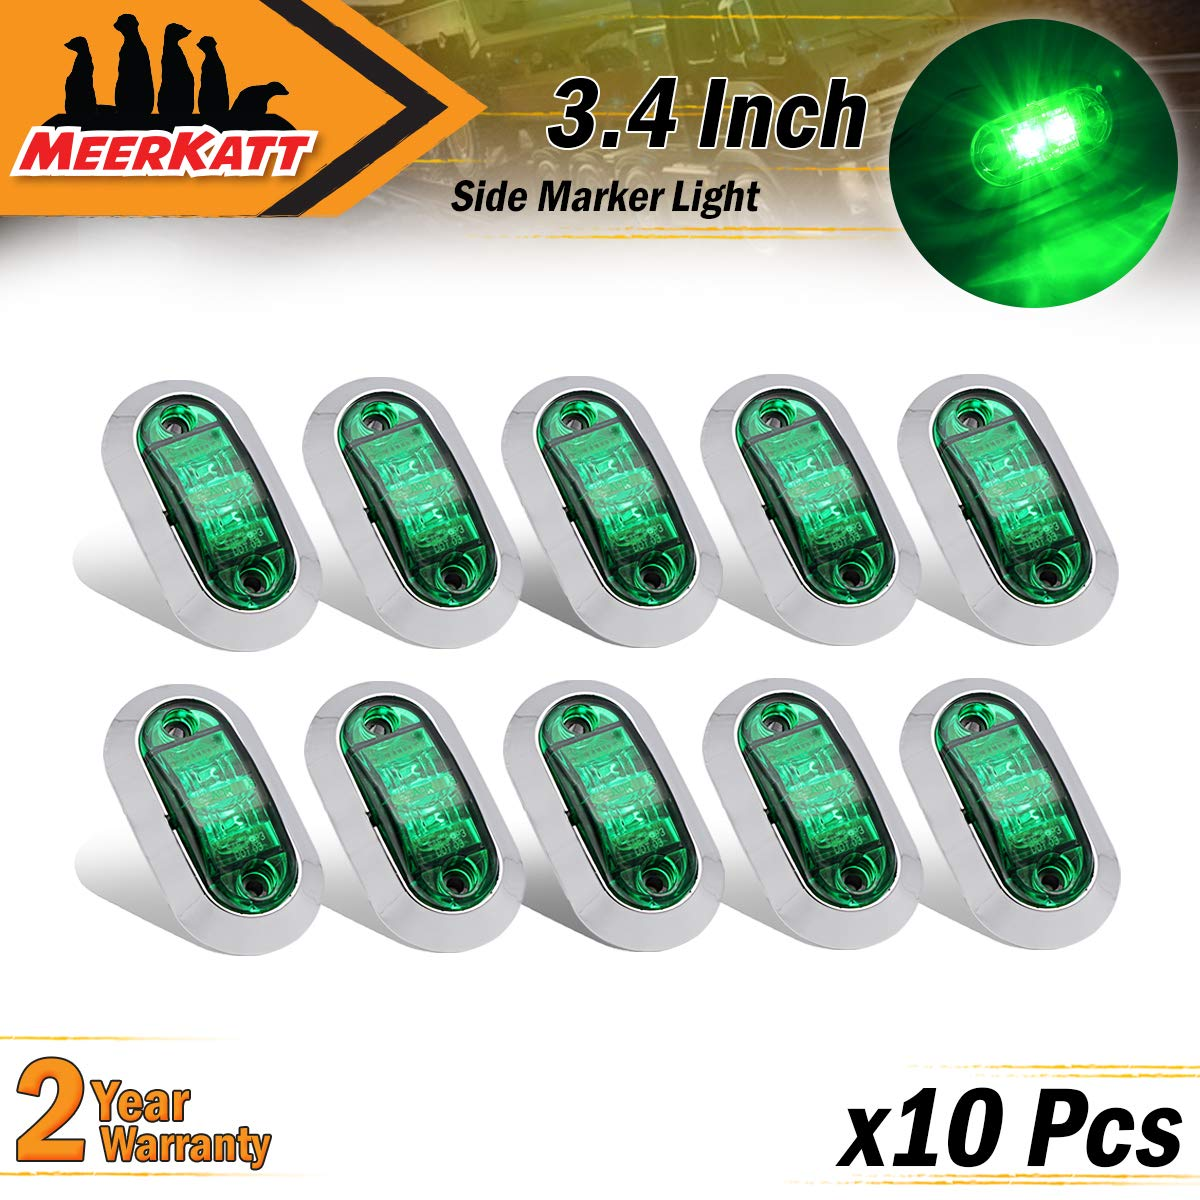 """2.5/"""" Inch Oval Green LED Sealed Surface Mount Side Marker Clearance Lights 2 Diodes Universal Camper Truck Trailer SUV Cabin Bus Lorry w//Chrome Bezel 10-30V DC Waterproof LM-CHS Meerkatt Pack of 10"""